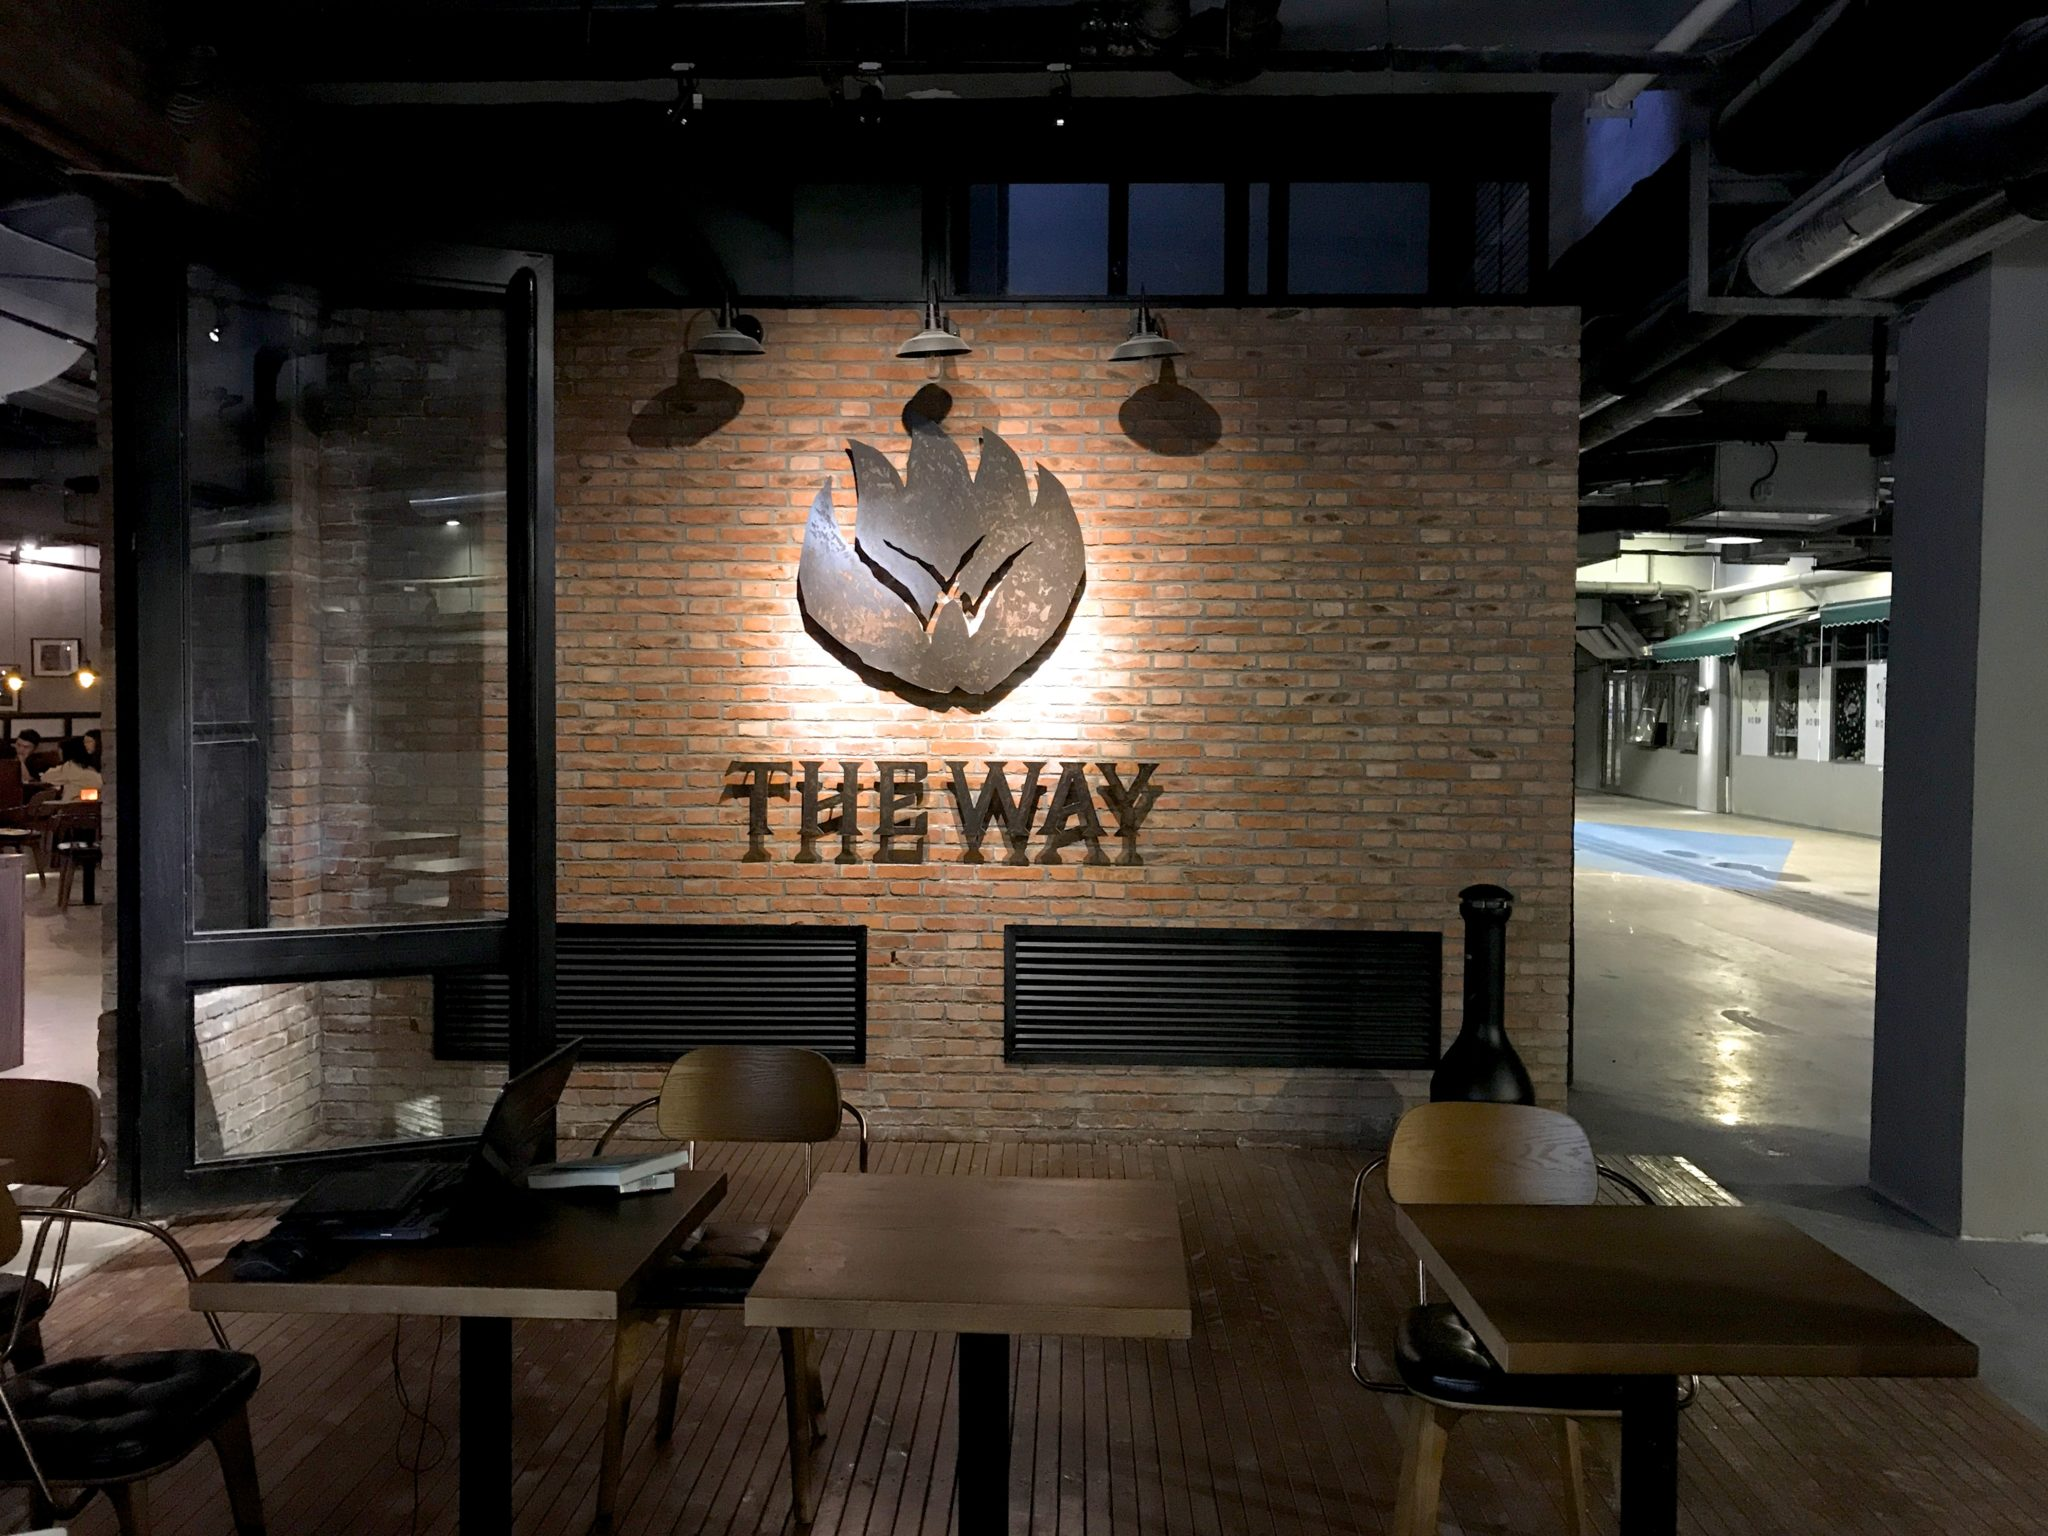 The Way: Qingdao Microbrewery - Traveling with JC